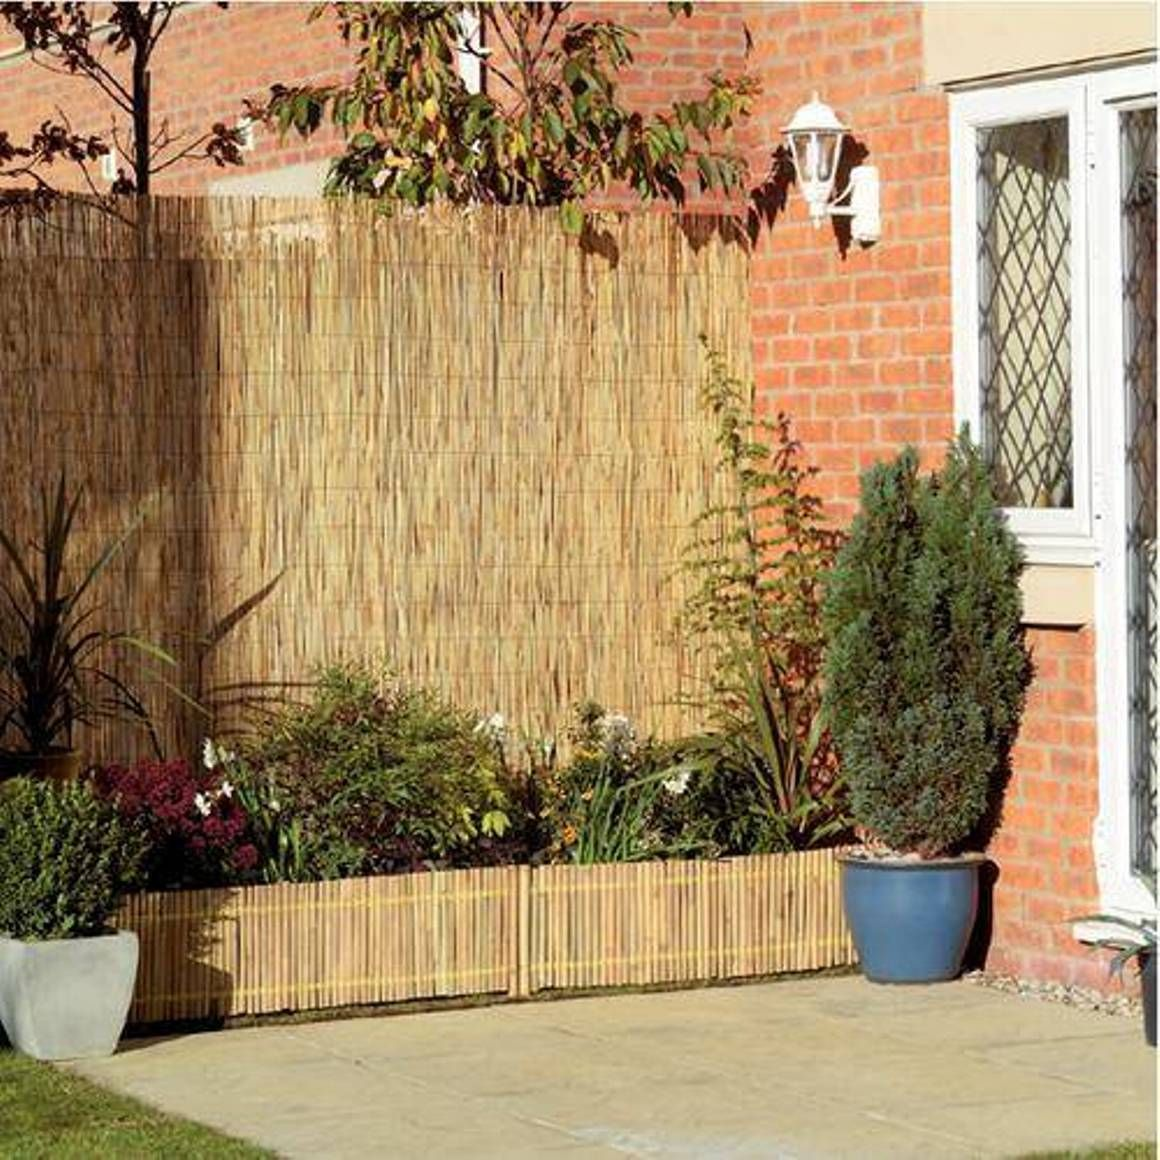 10 Bamboo Garden Ideas Most Of The Awesome And Lovely Bamboo Garden Fences Bamboo Garden Fence Design